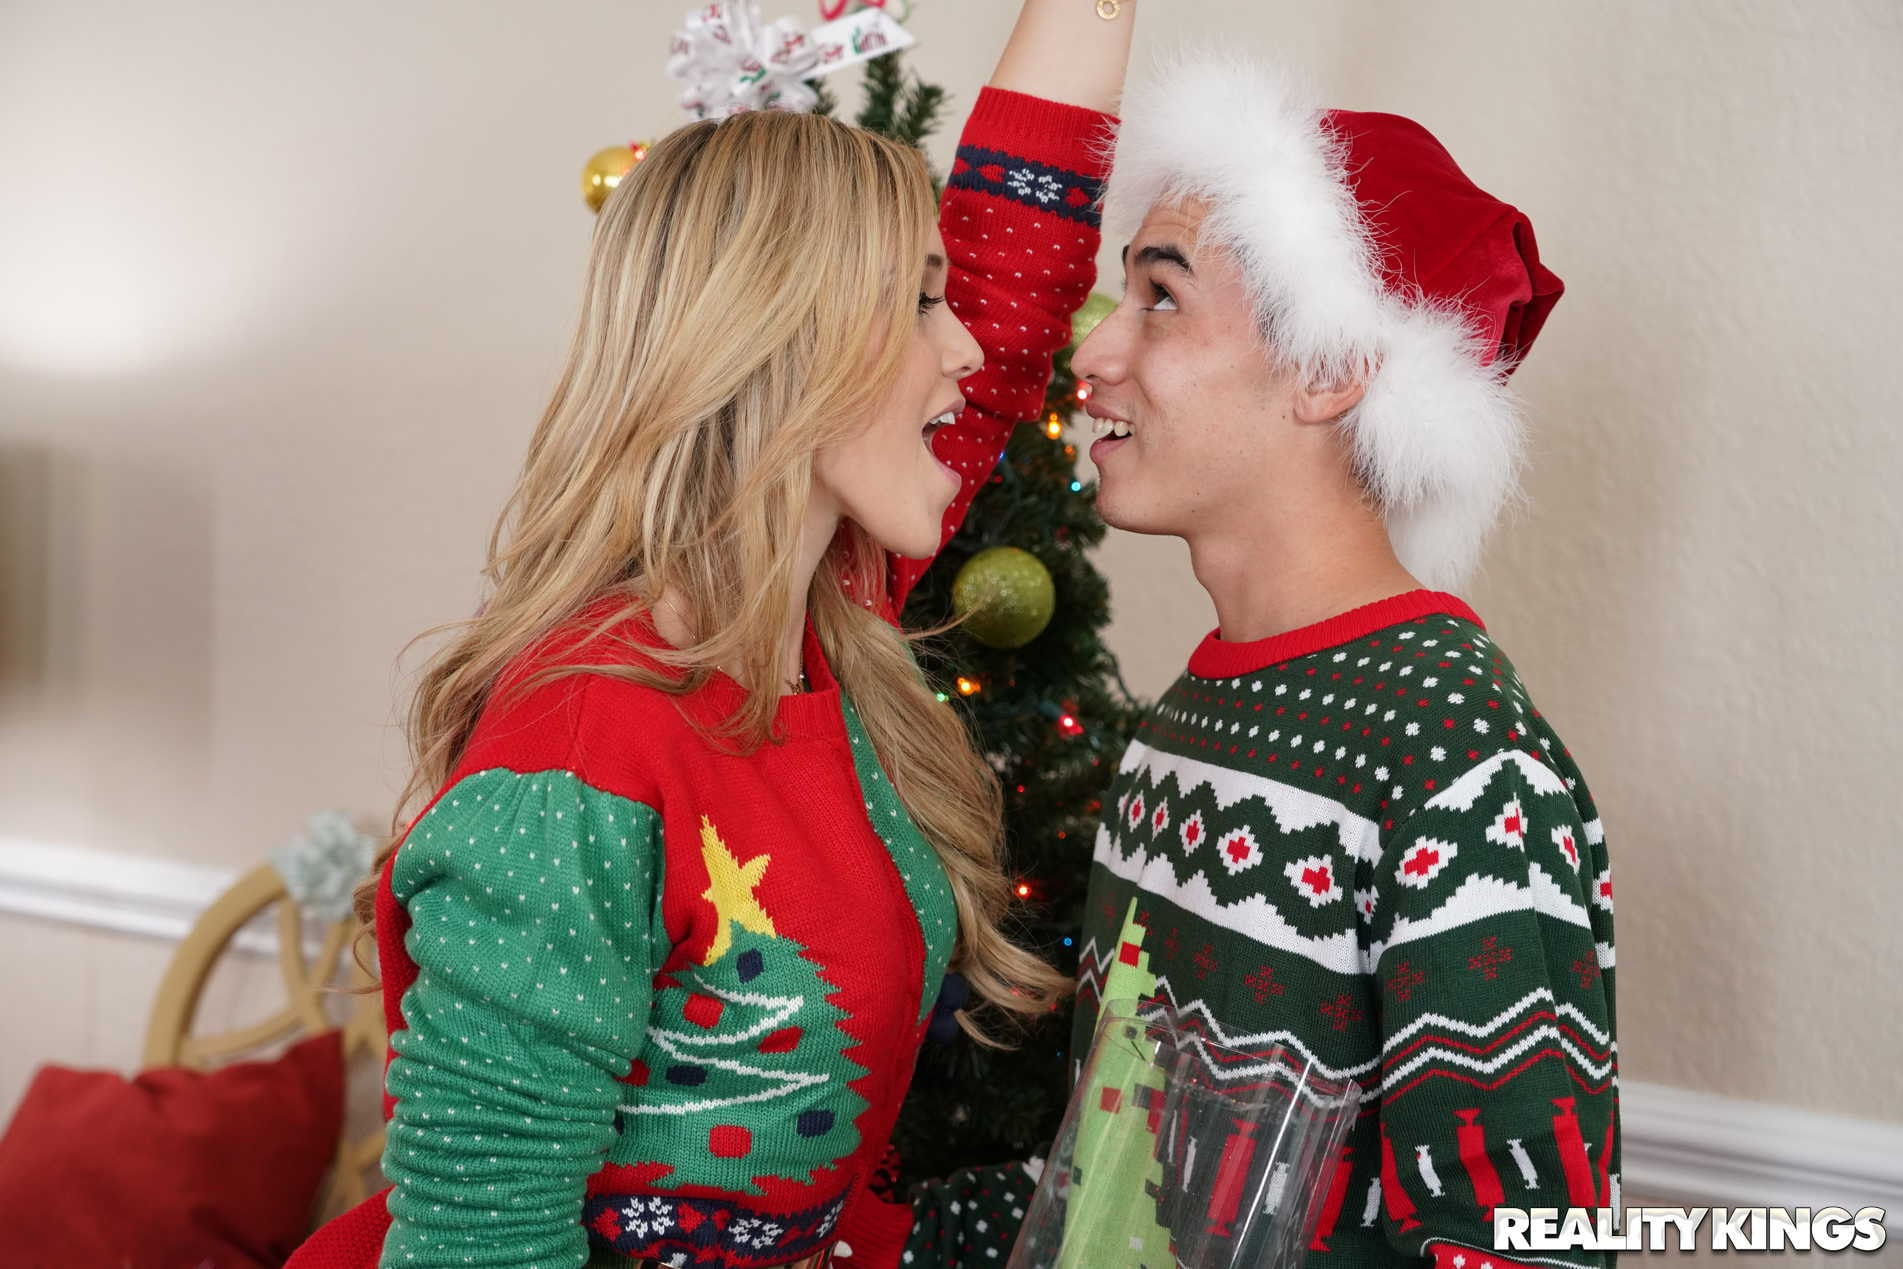 Reality Kings 'Keep The Xmas Lights Tied On' starring Cory Chase (Photo 105)